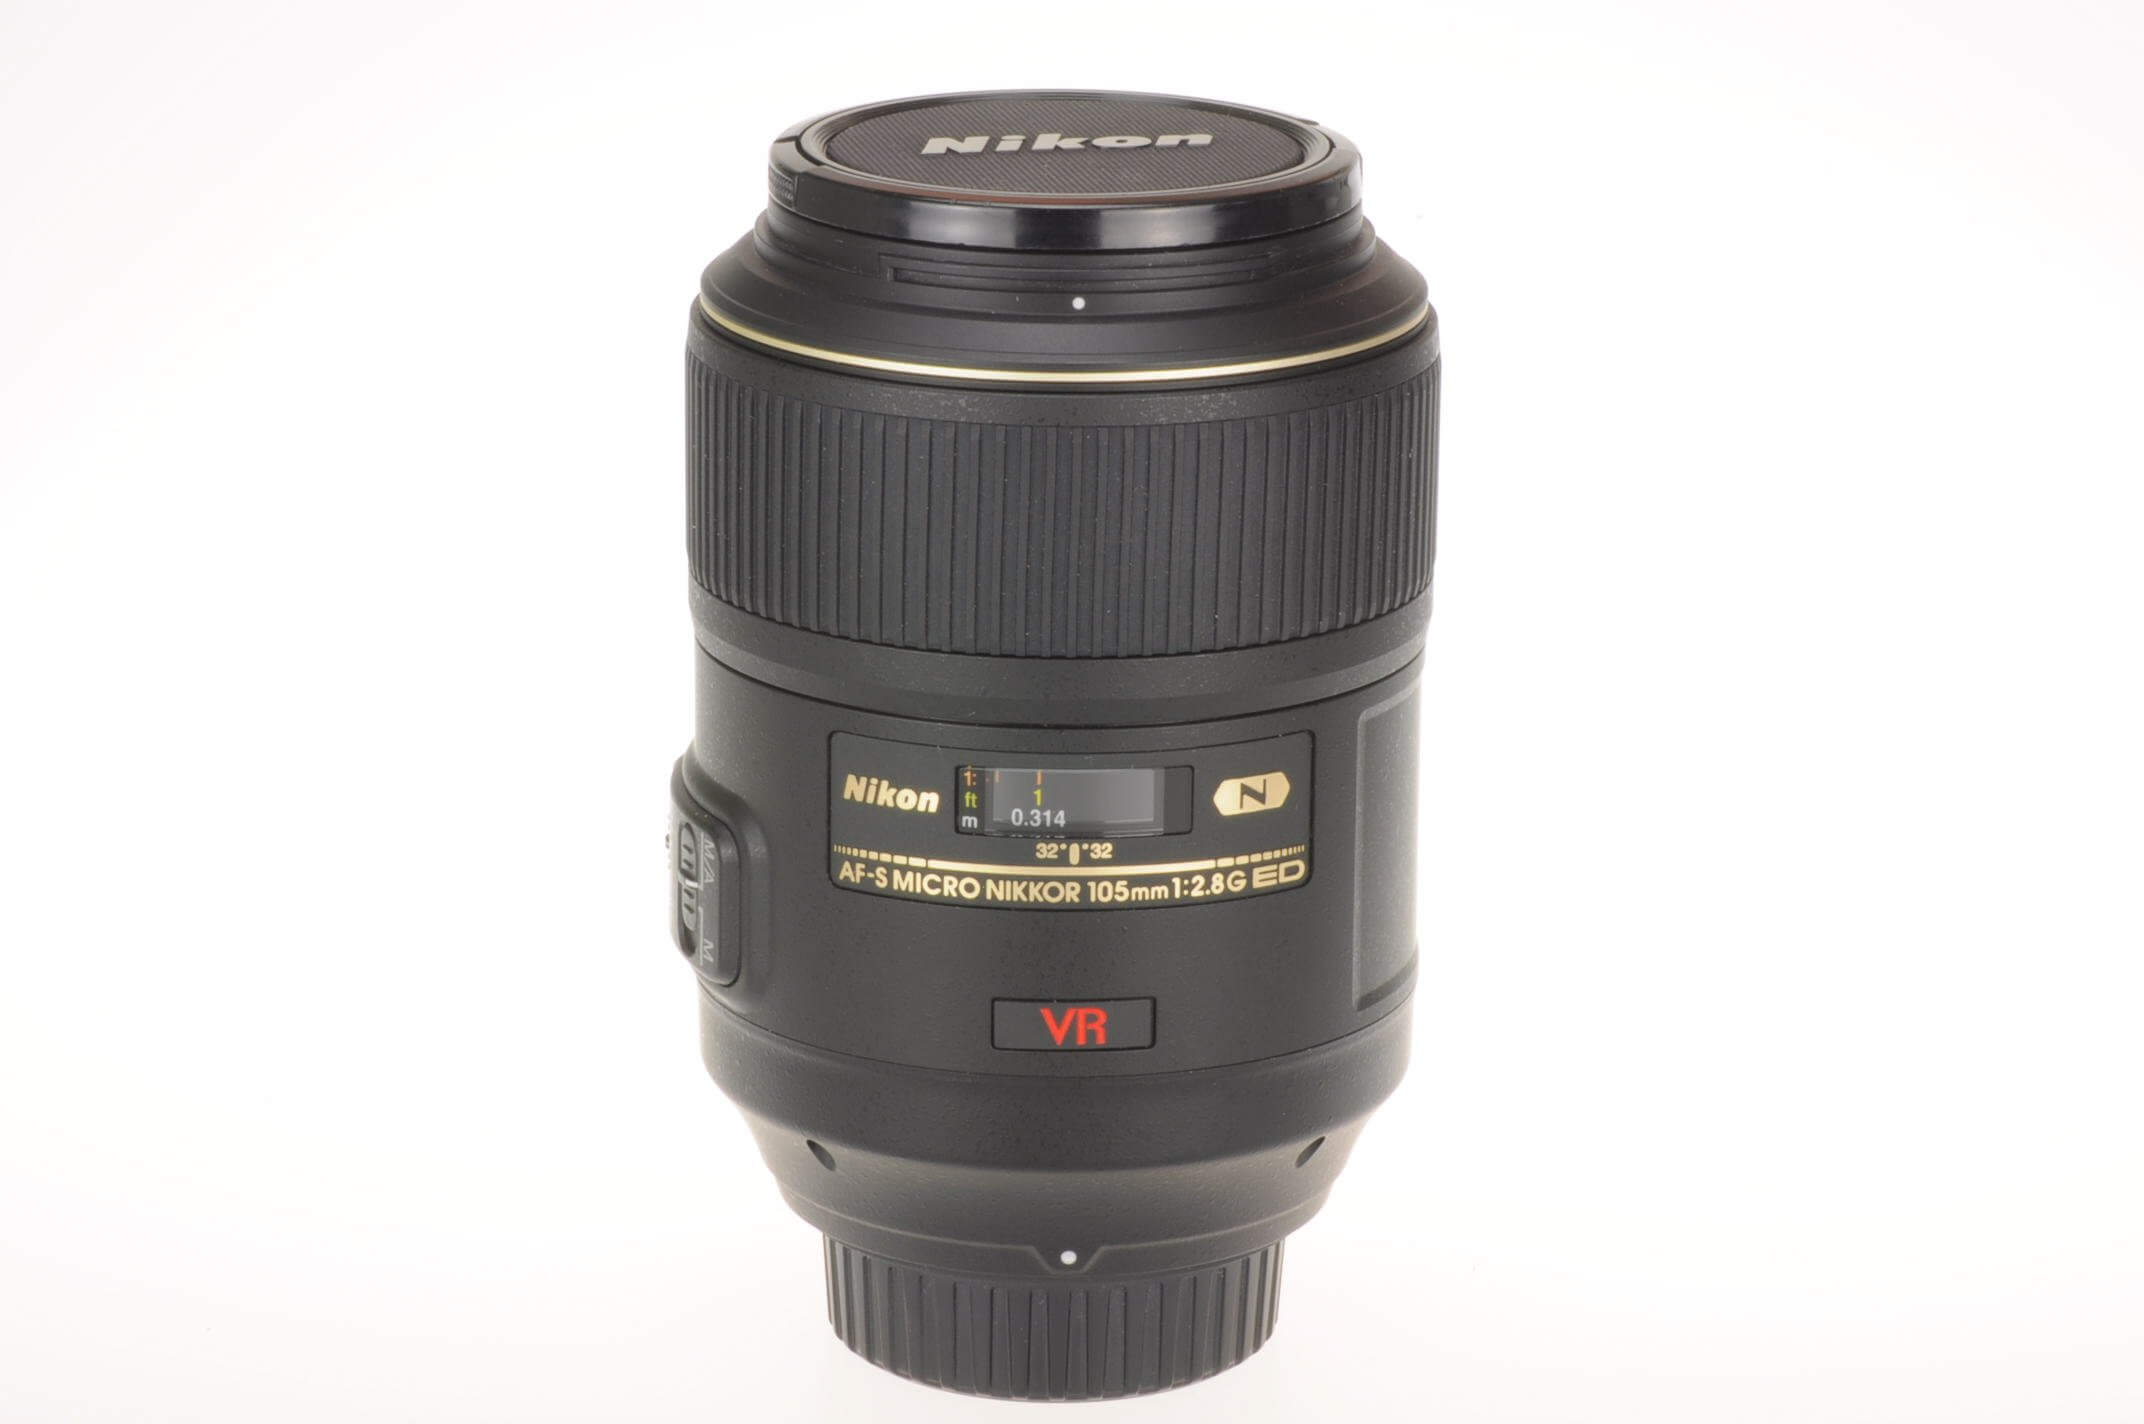 Nikon 105mm f2.8 Micro Nikkor AF-S G, stunning condition!